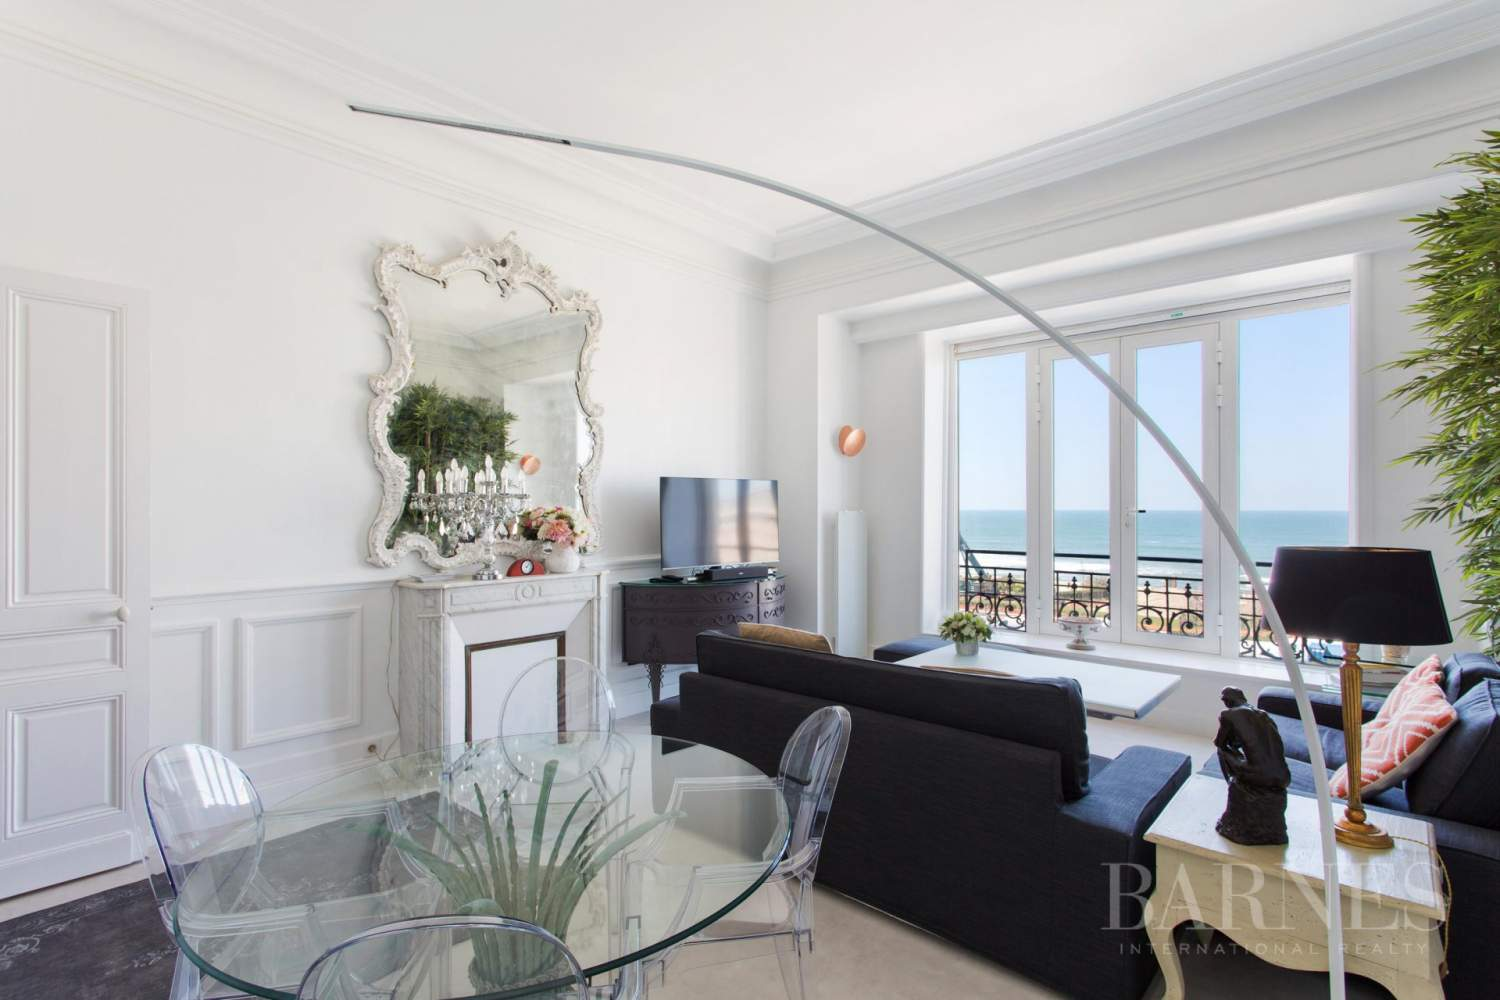 BIARRITZ, APARTMENT OVERLOOKING LA GRANDE PLAGE AND HOTEL DU PALAIS, 1 BEDROOM, 2 PEOPLE picture 2